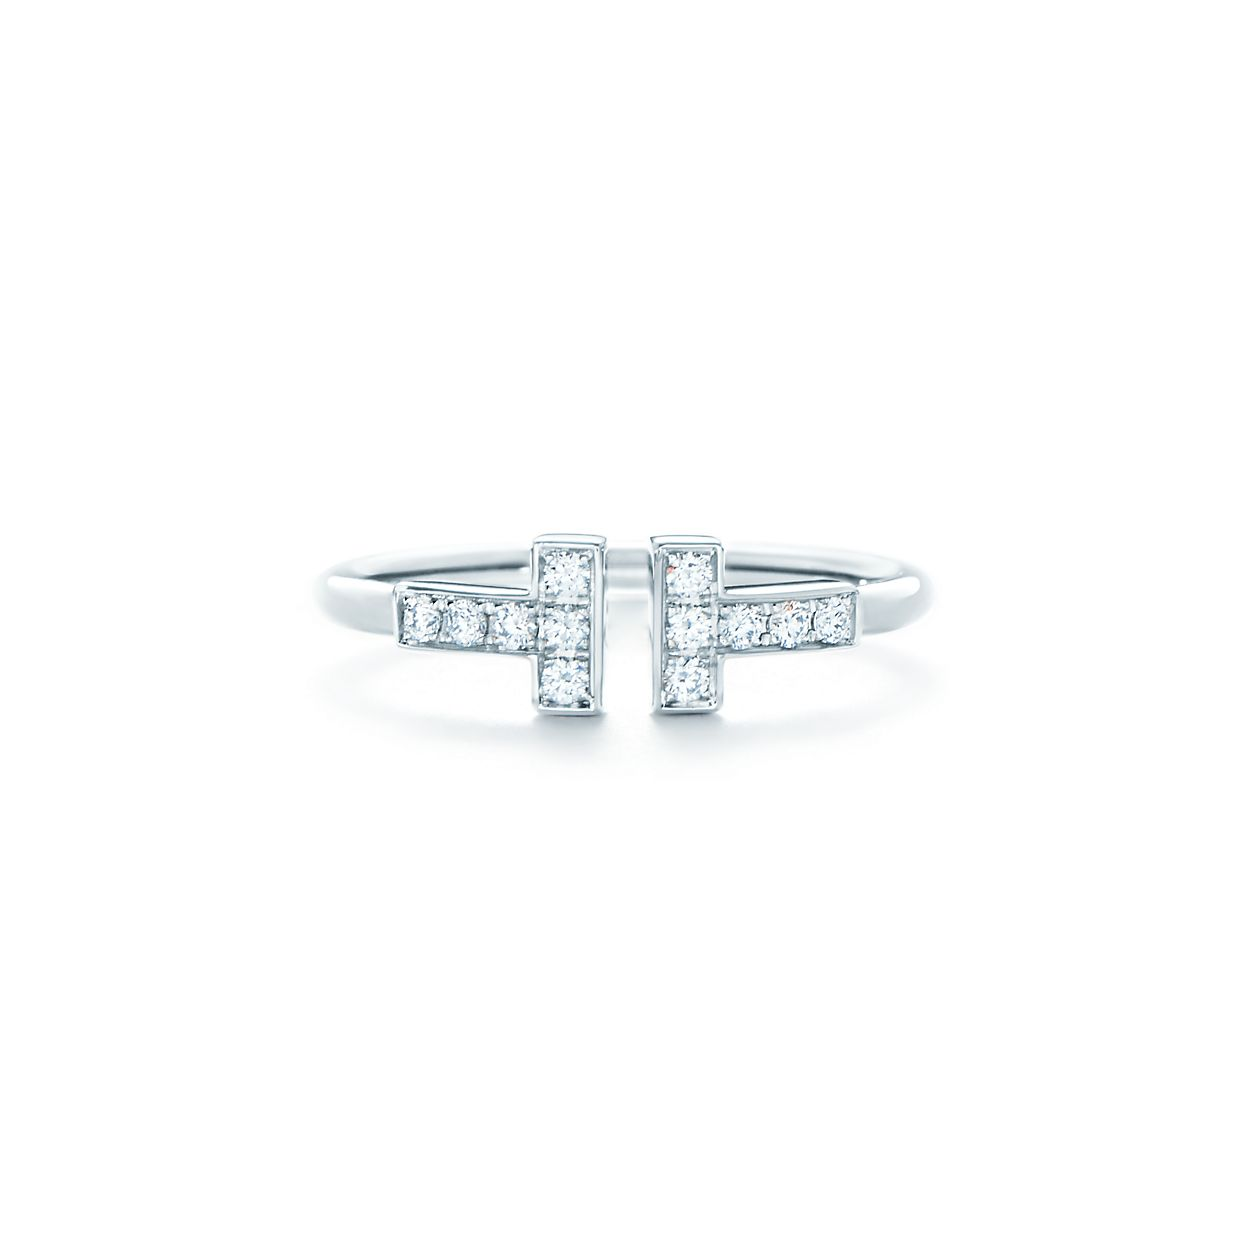 Tiffany T wire ring in 18k white gold with diamonds. | Tiffany & Co.